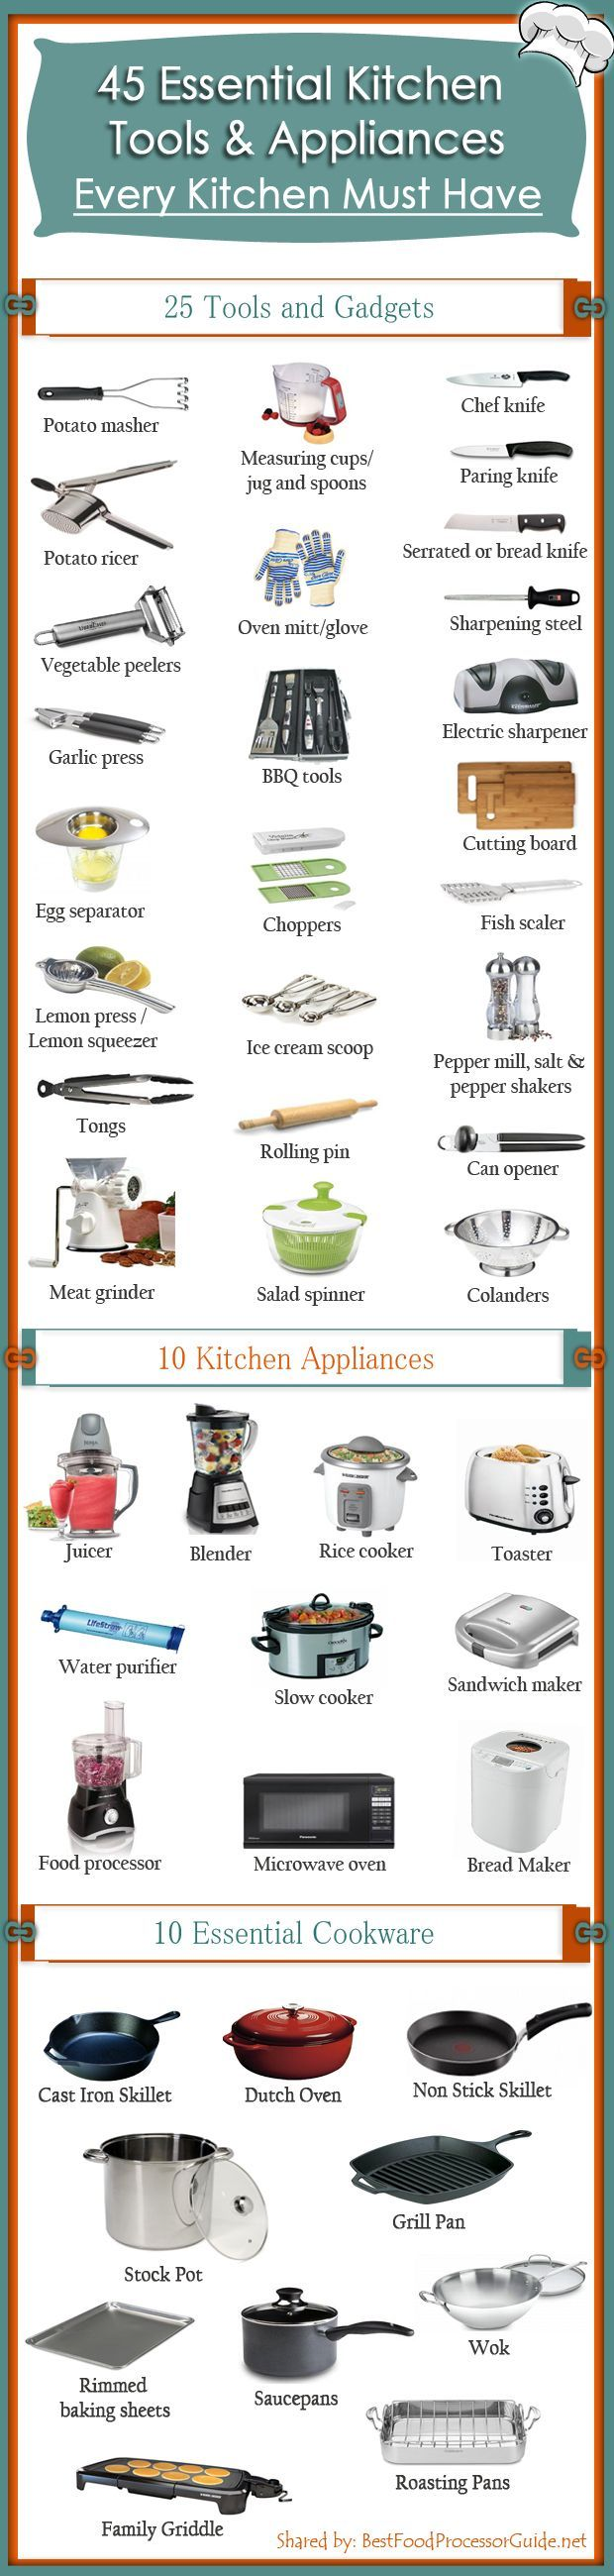 45 essential kitchen tools and appliances every kitchen must have designed by bdhire